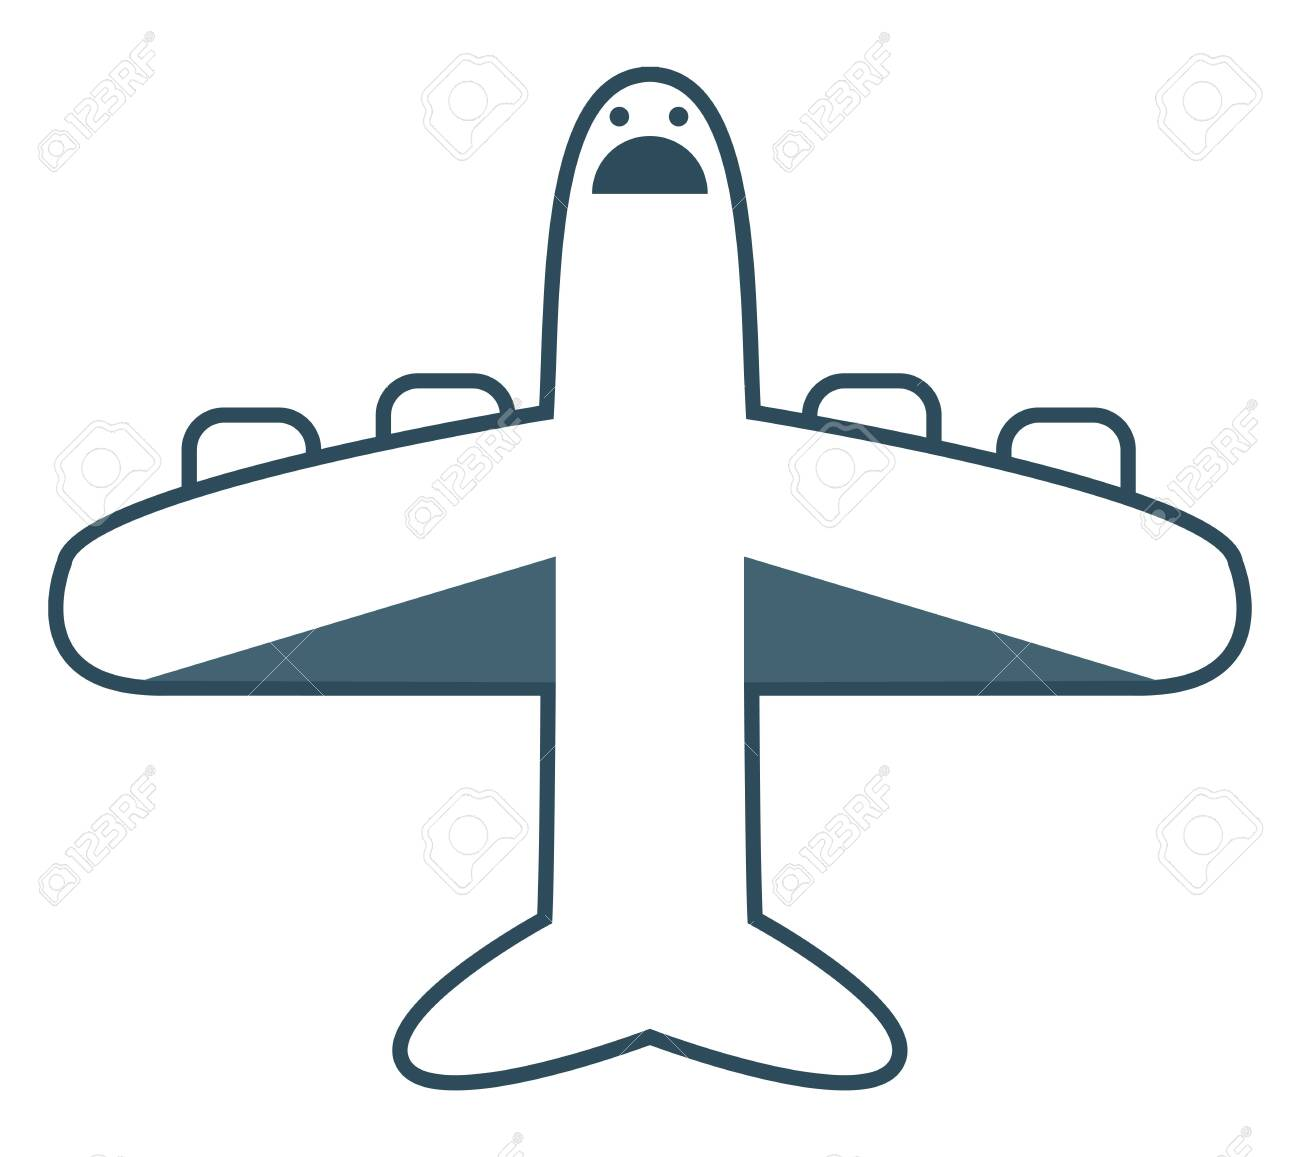 The Blue Plane The Powered Flying Vehicle With Fixed Wing Has Royalty Free Cliparts Vectors And Stock Illustration Image 132672062